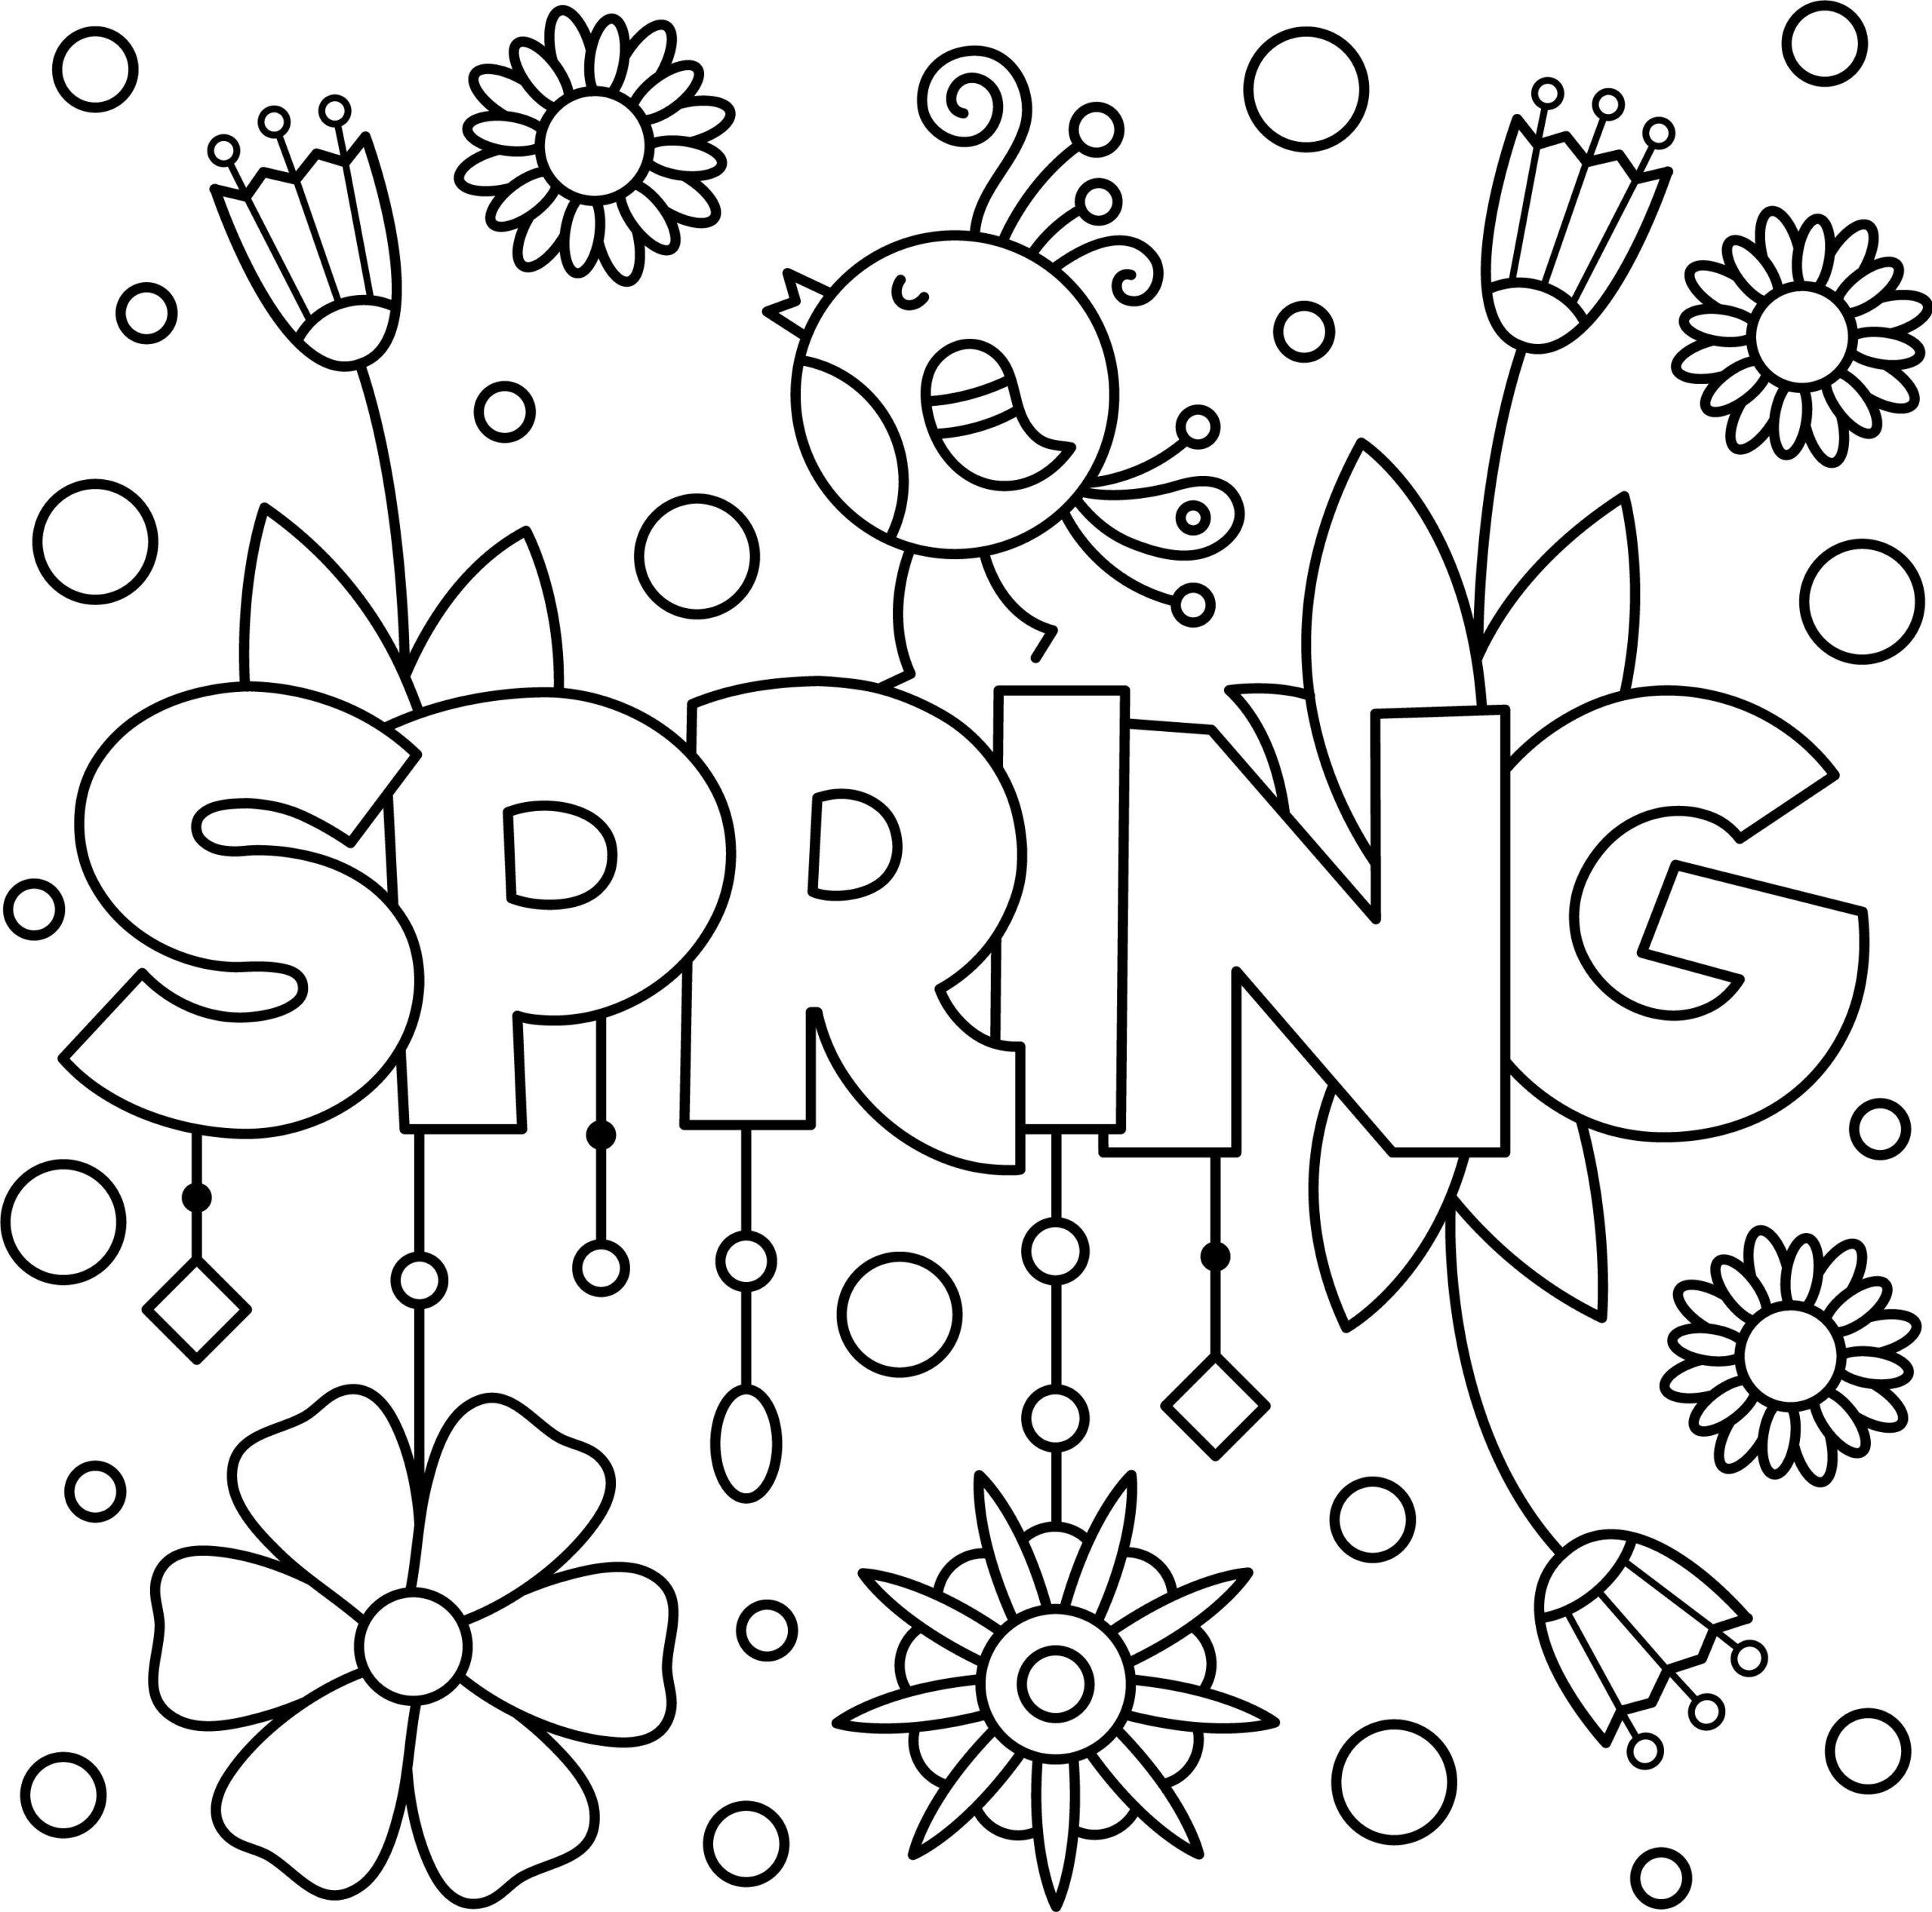 76 Preschool Welcome Spring Coloring Pages In 2020 Spring Coloring Sheets Preschool Coloring Pages Spring Coloring Pages